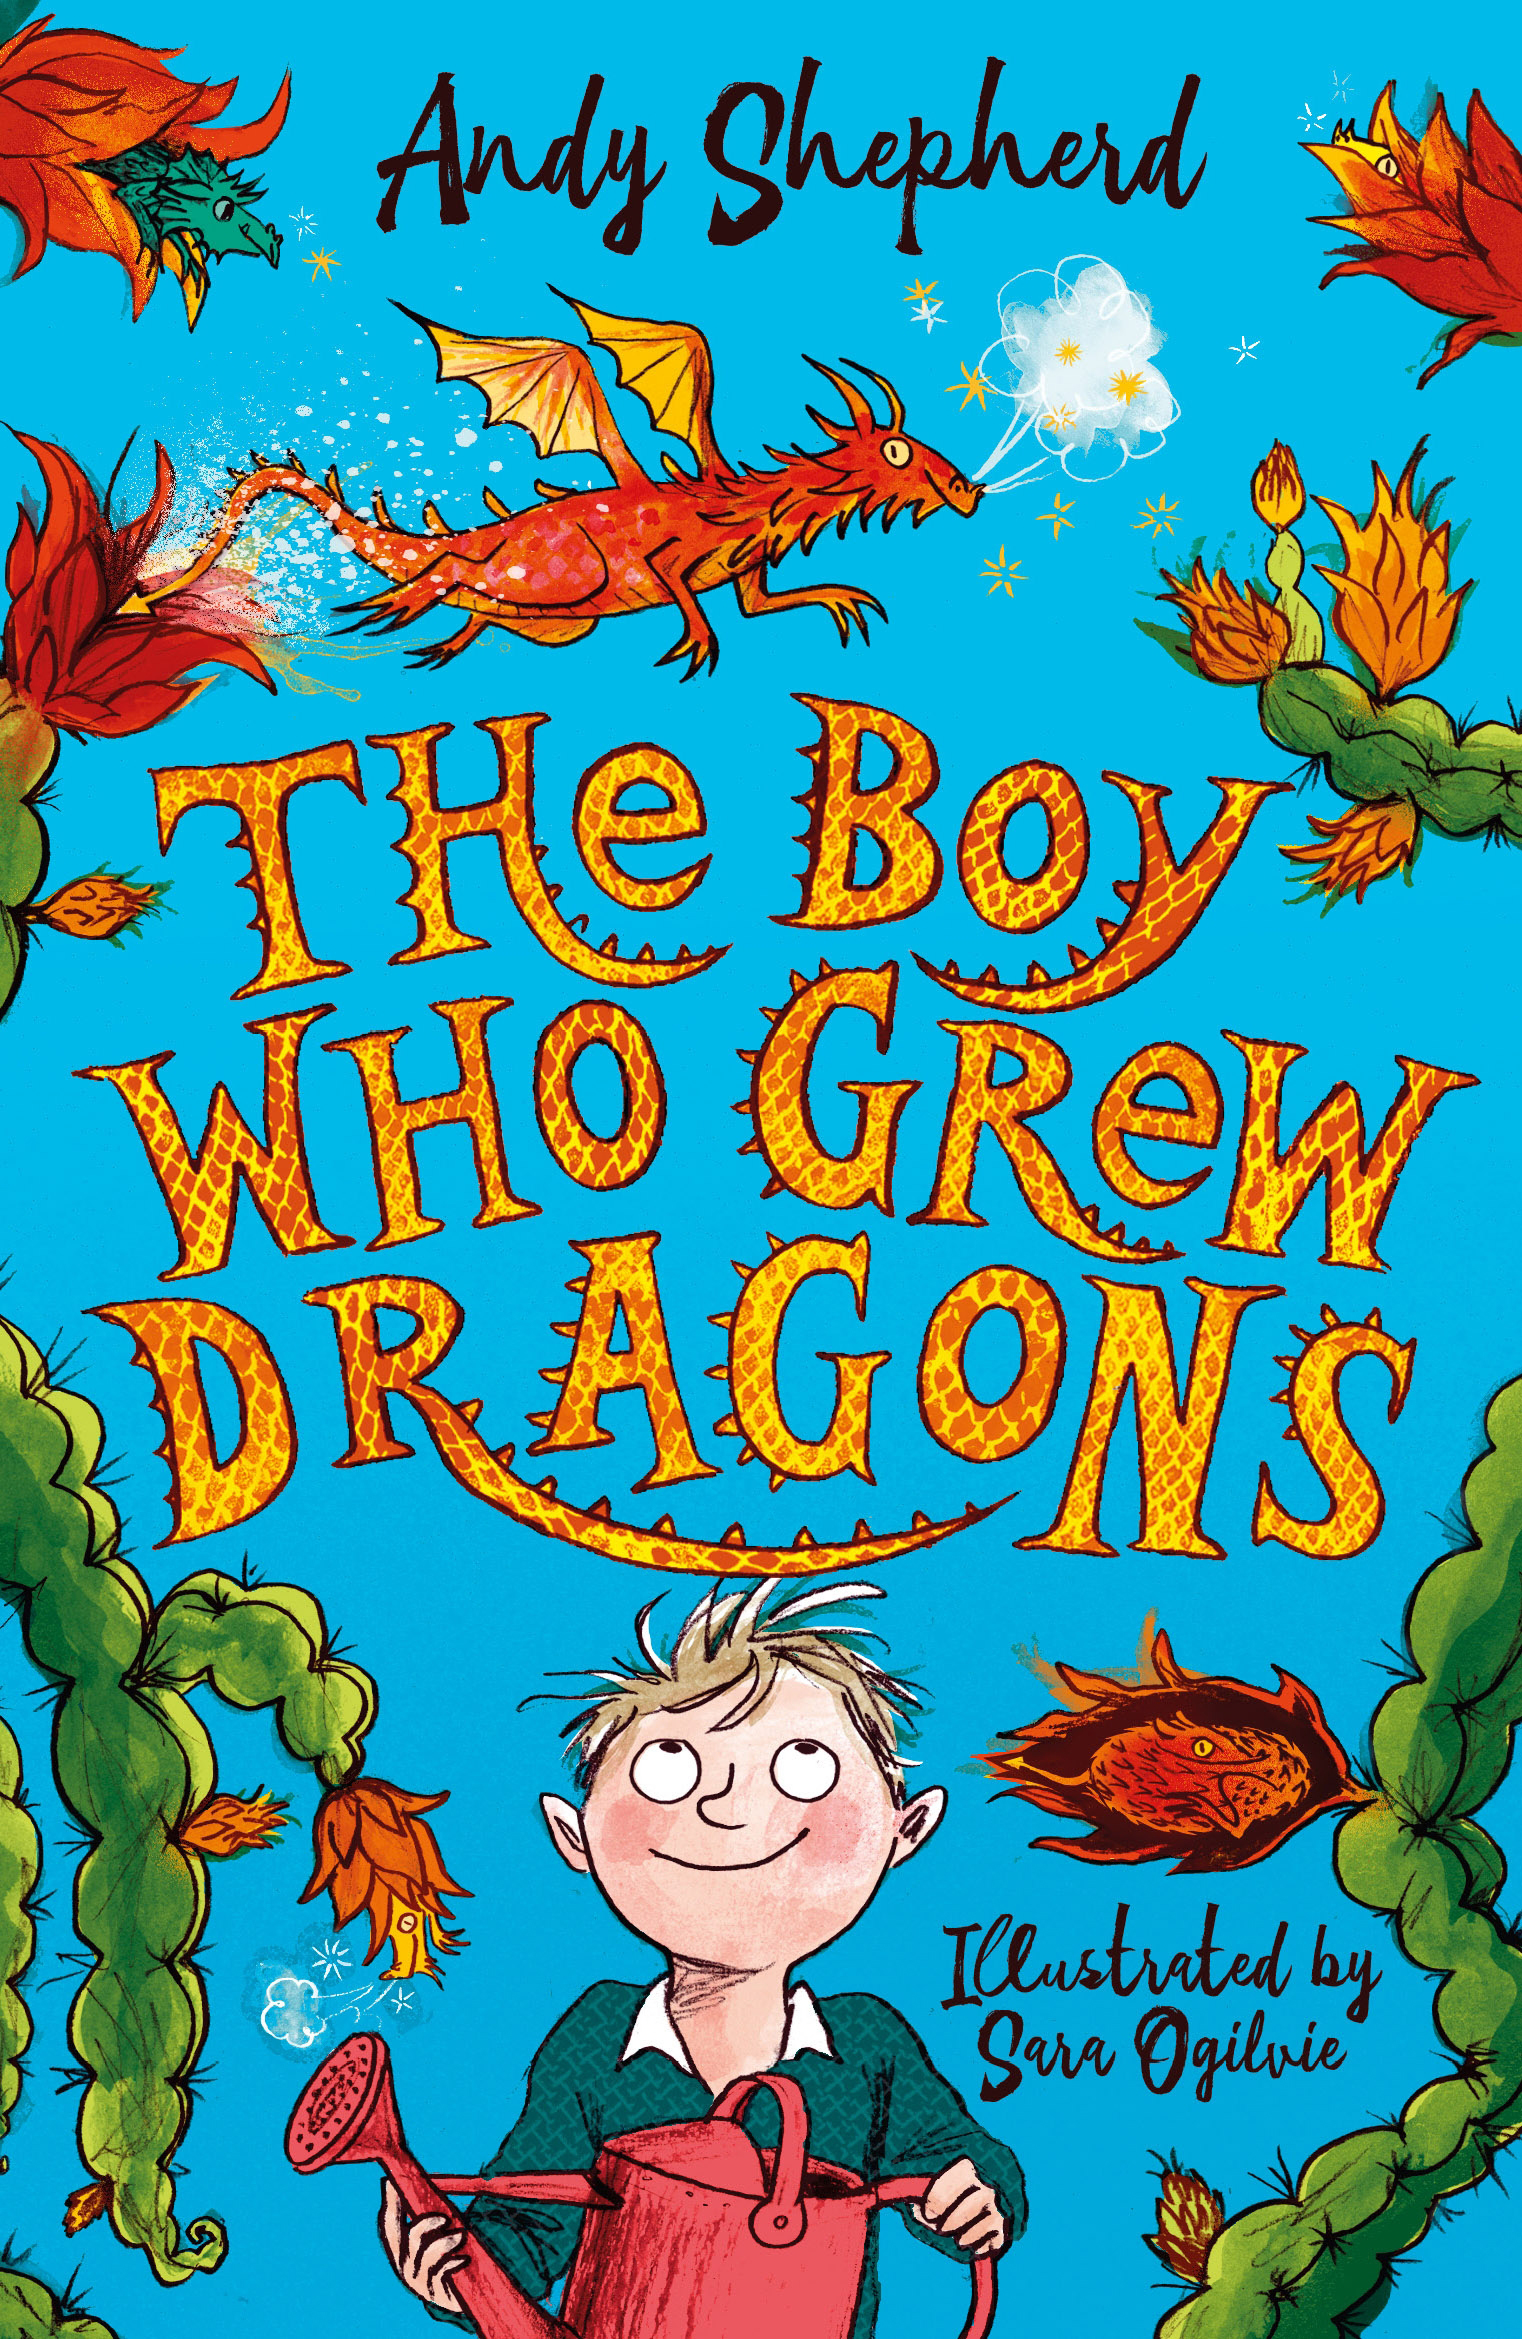 Classroom Tree Ideas ~ The boy who grew dragons andy shepherd illustrated by